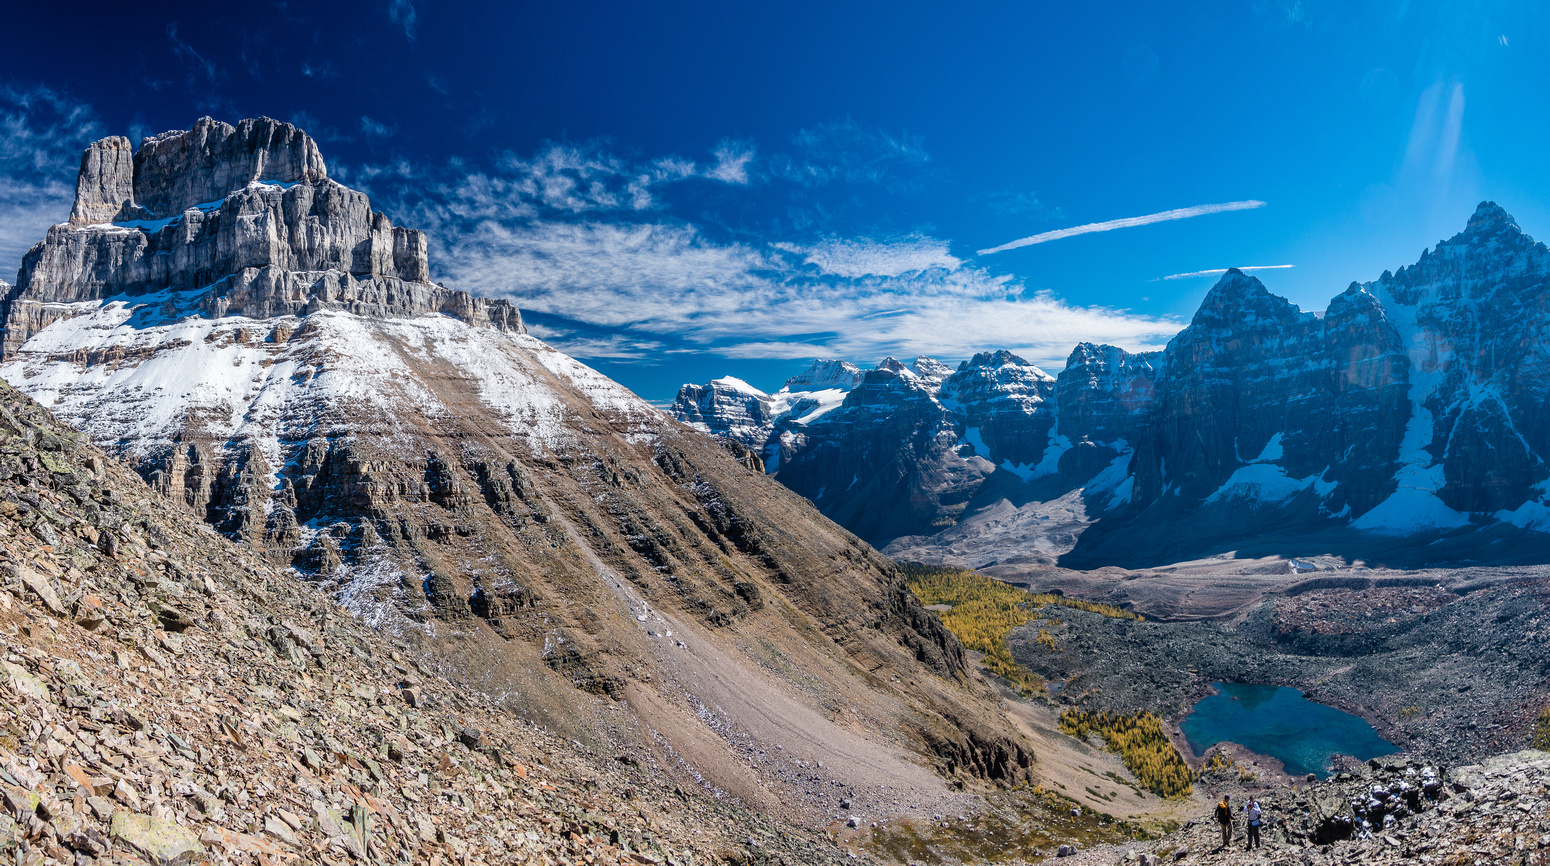 More views of the Valley of Ten Peaks and Eiffel Lake.